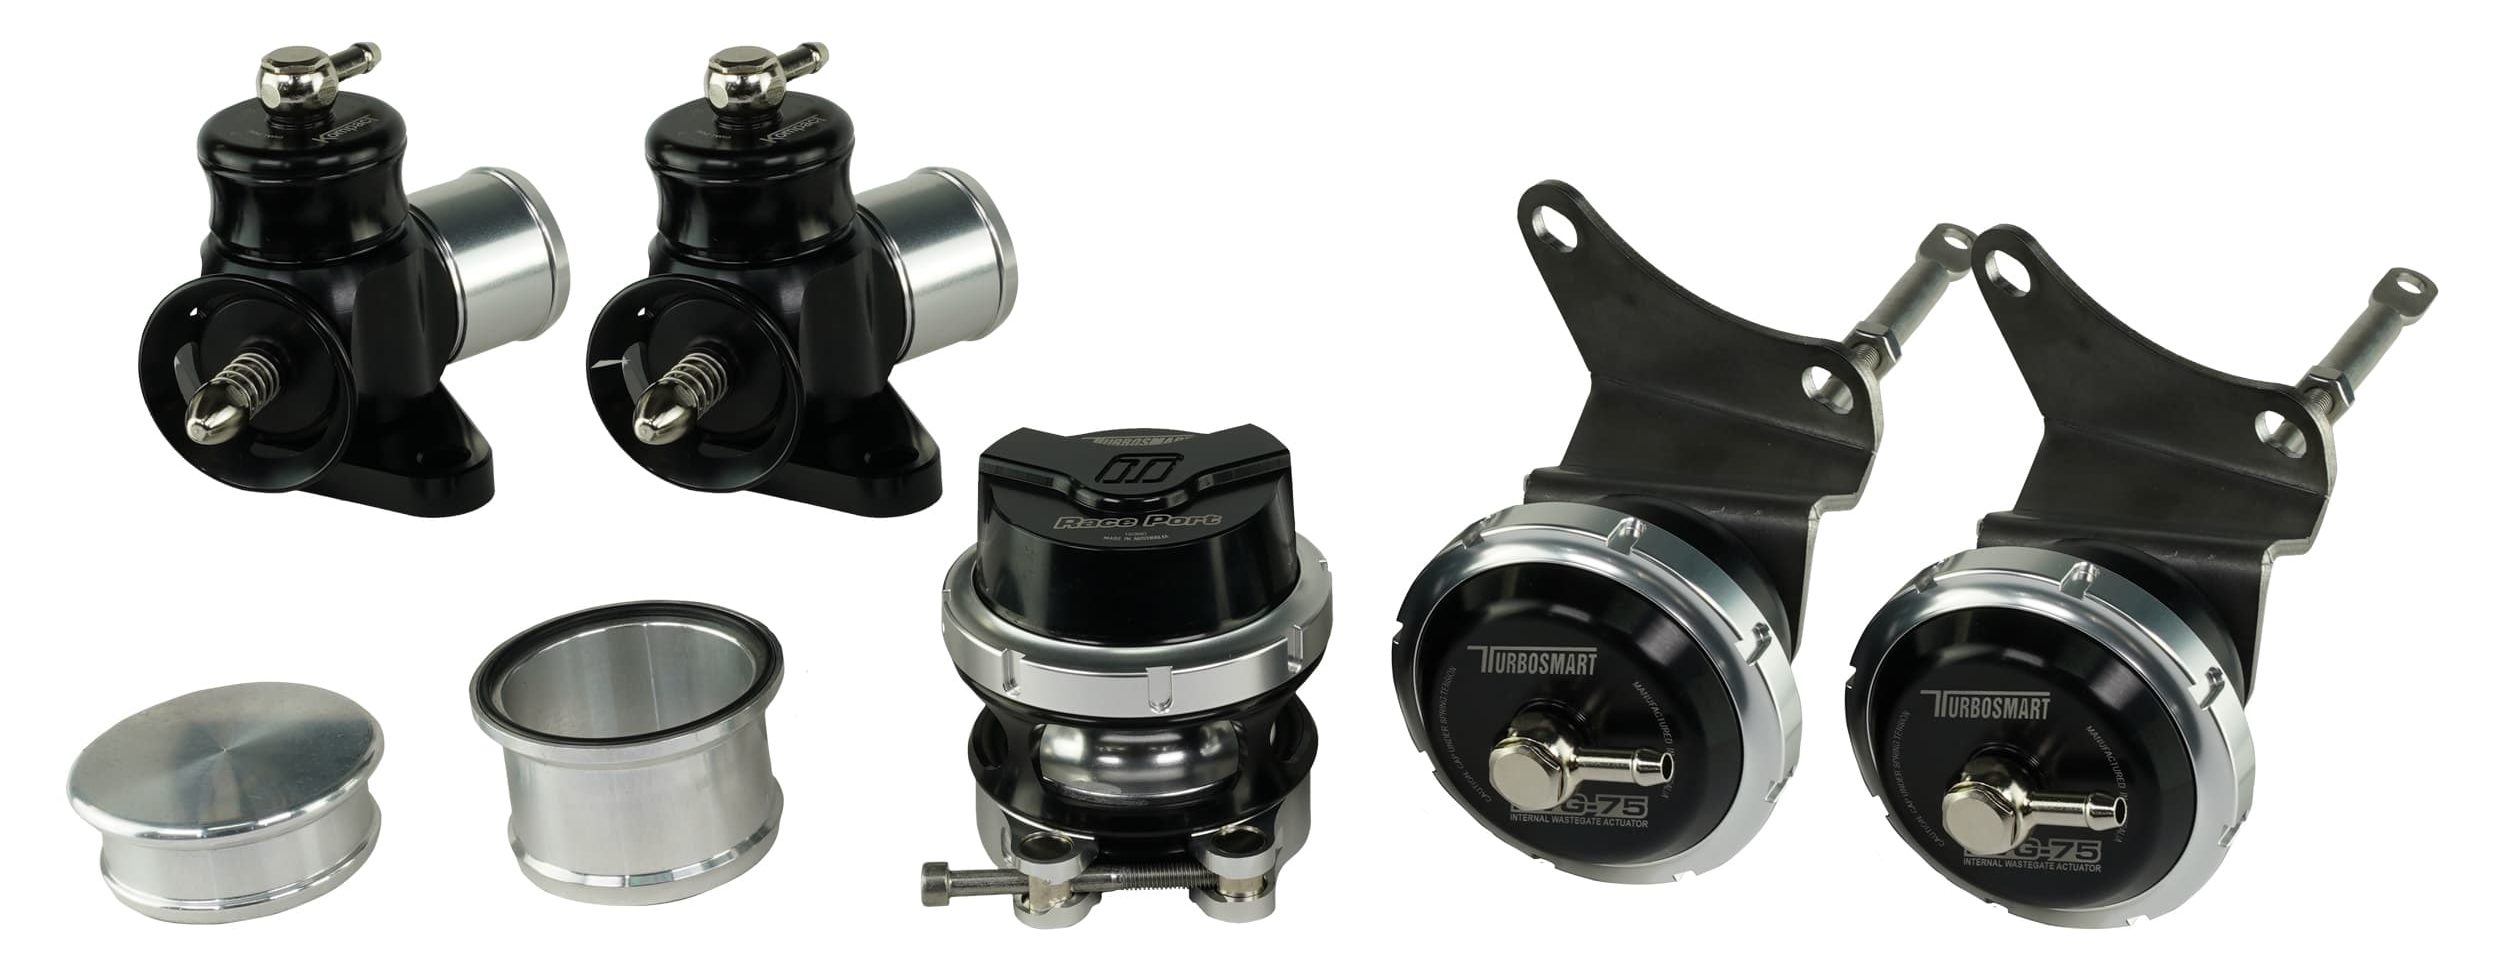 Bolt-On BOV's & Upgraded Actuators